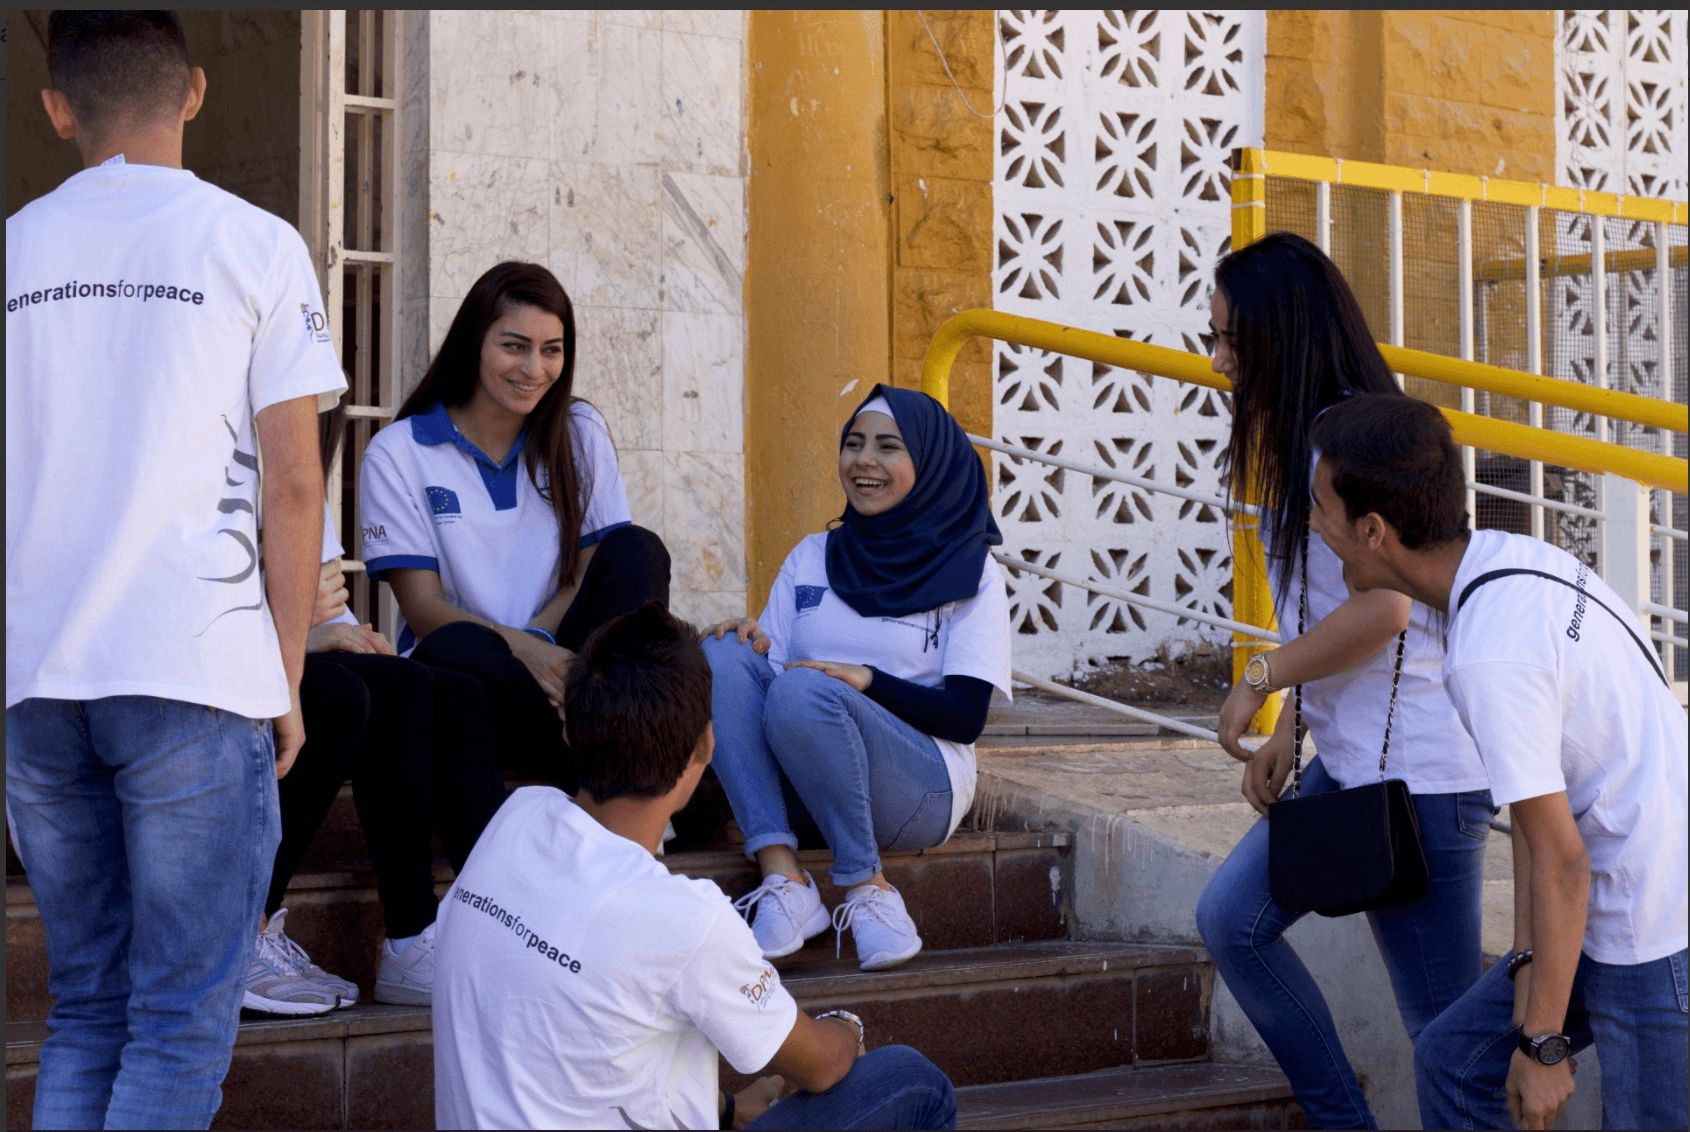 Generations For Peace partners with AIESEC Jordan to give unique internship opportunities to local and international university students